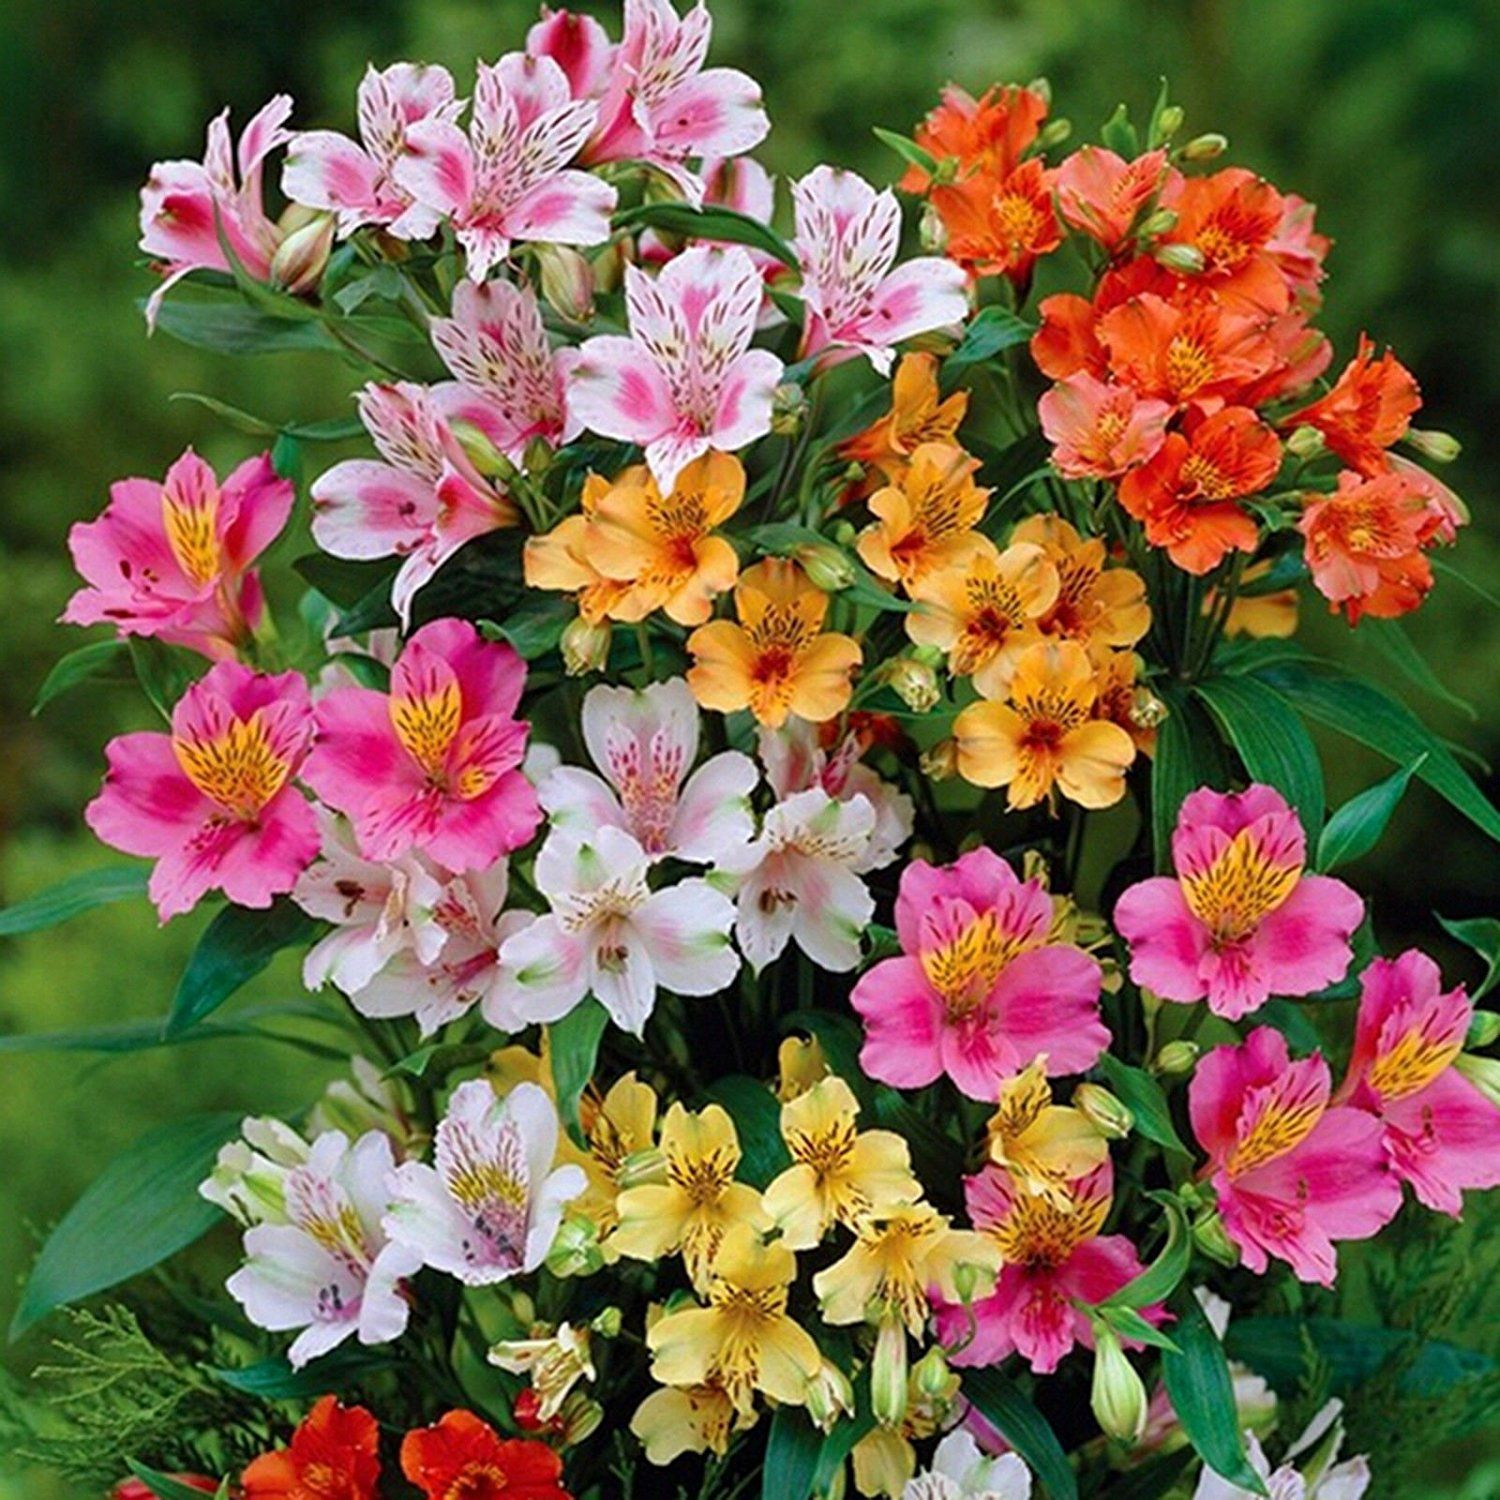 Alstroemeria commonly called the peruvian lily or lily of the incas